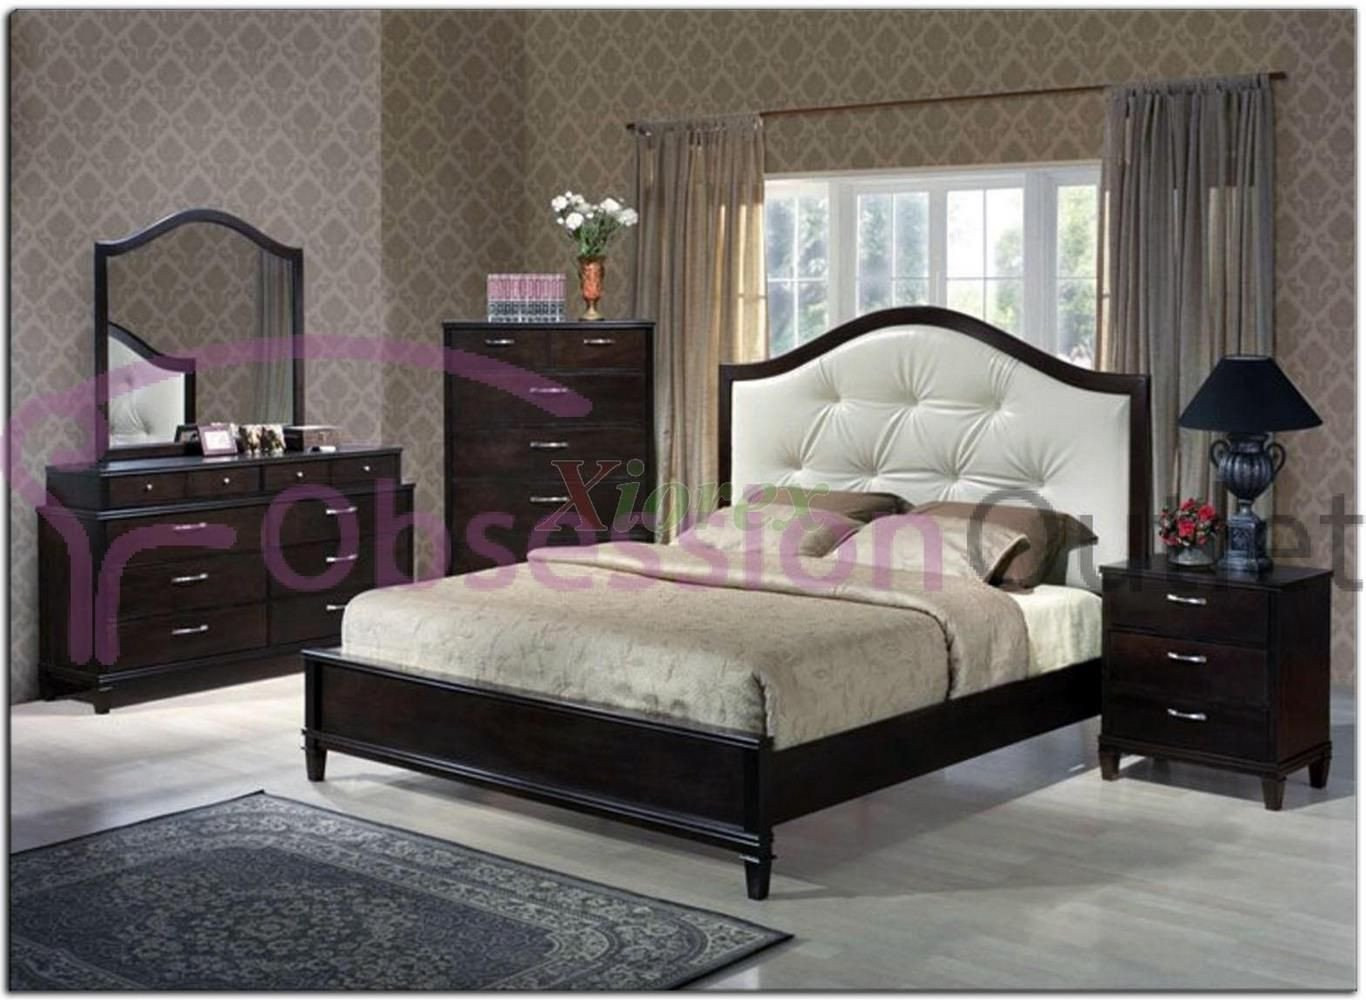 Cheap Bedroom Set with Mattress Awesome Sku Cpb204